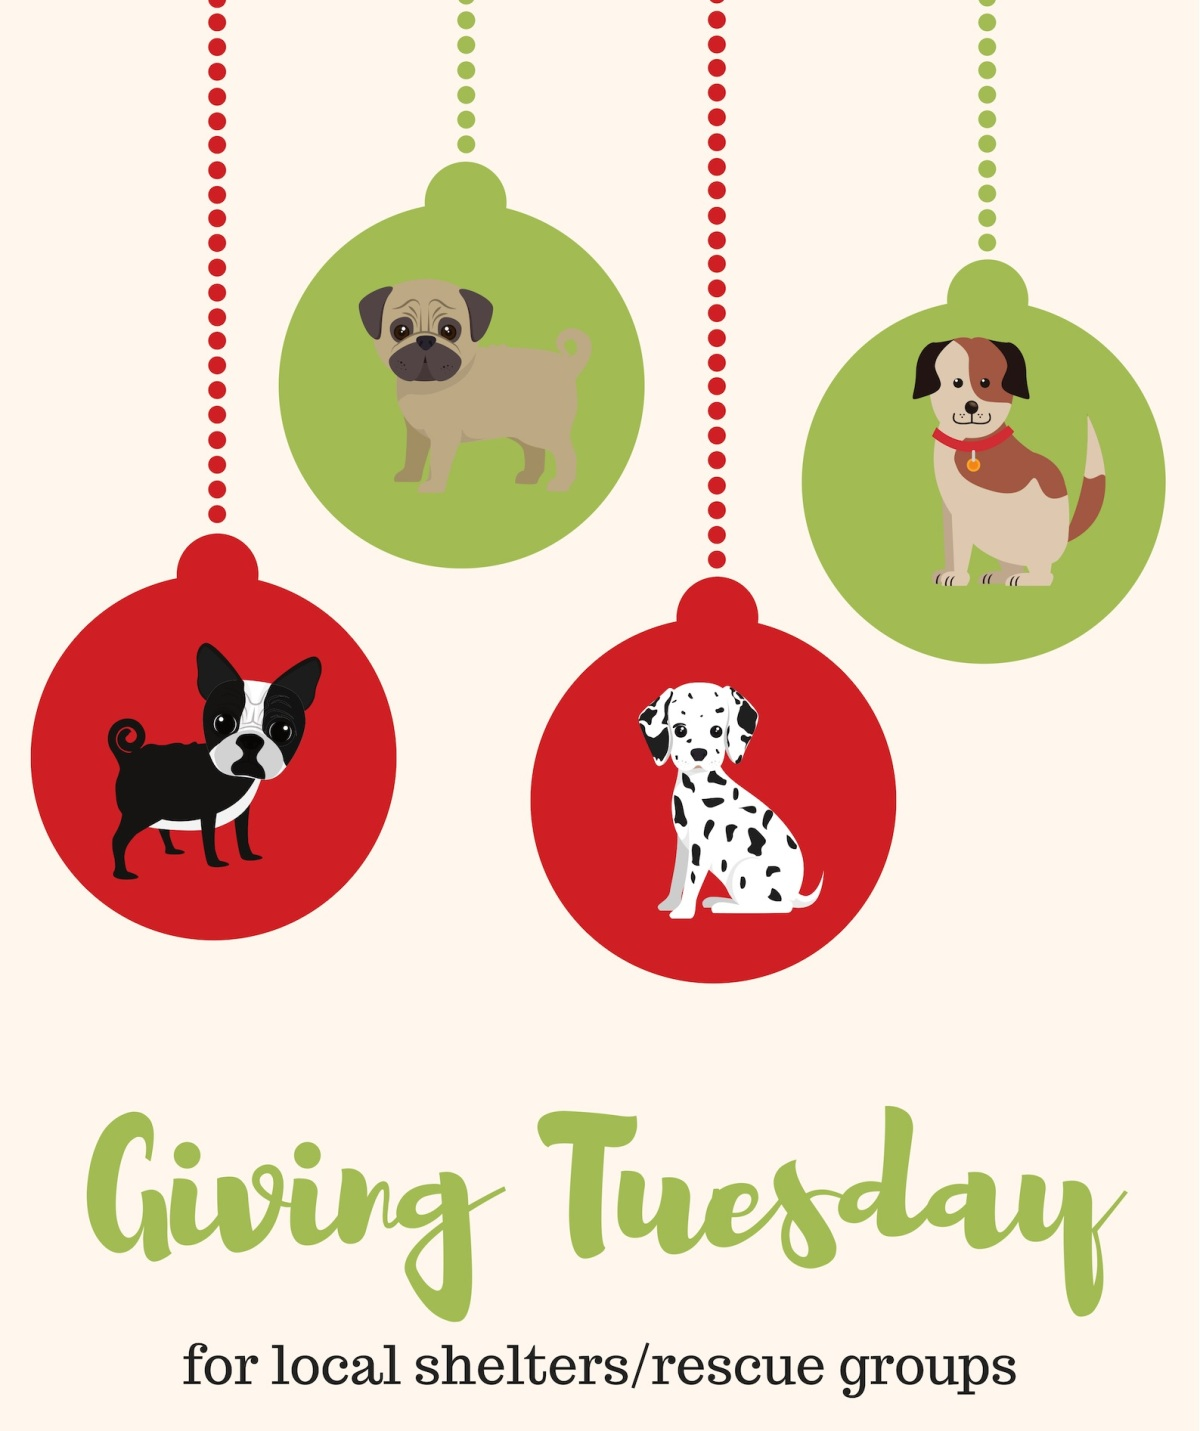 Ways to give back this#GivingTuesday